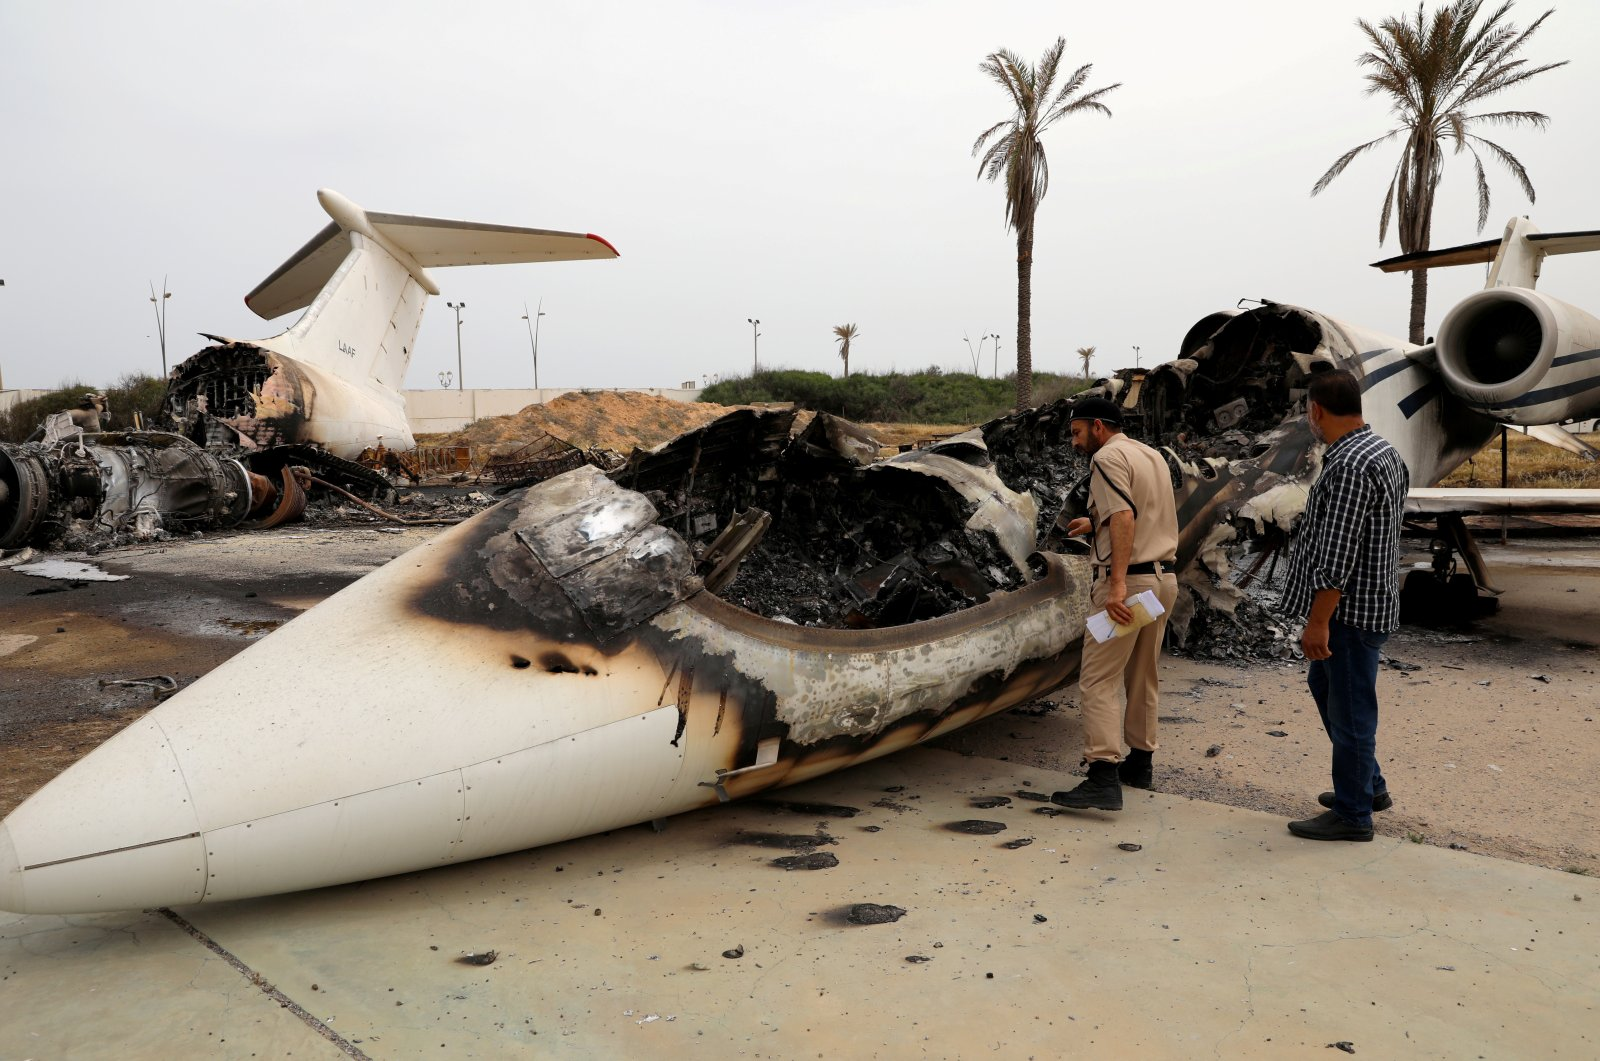 A policeman and a man inspect a passenger plane damaged by shelling at Mitiga airport in Tripoli, Libya, May 10, 2020. (Reuters Photo)